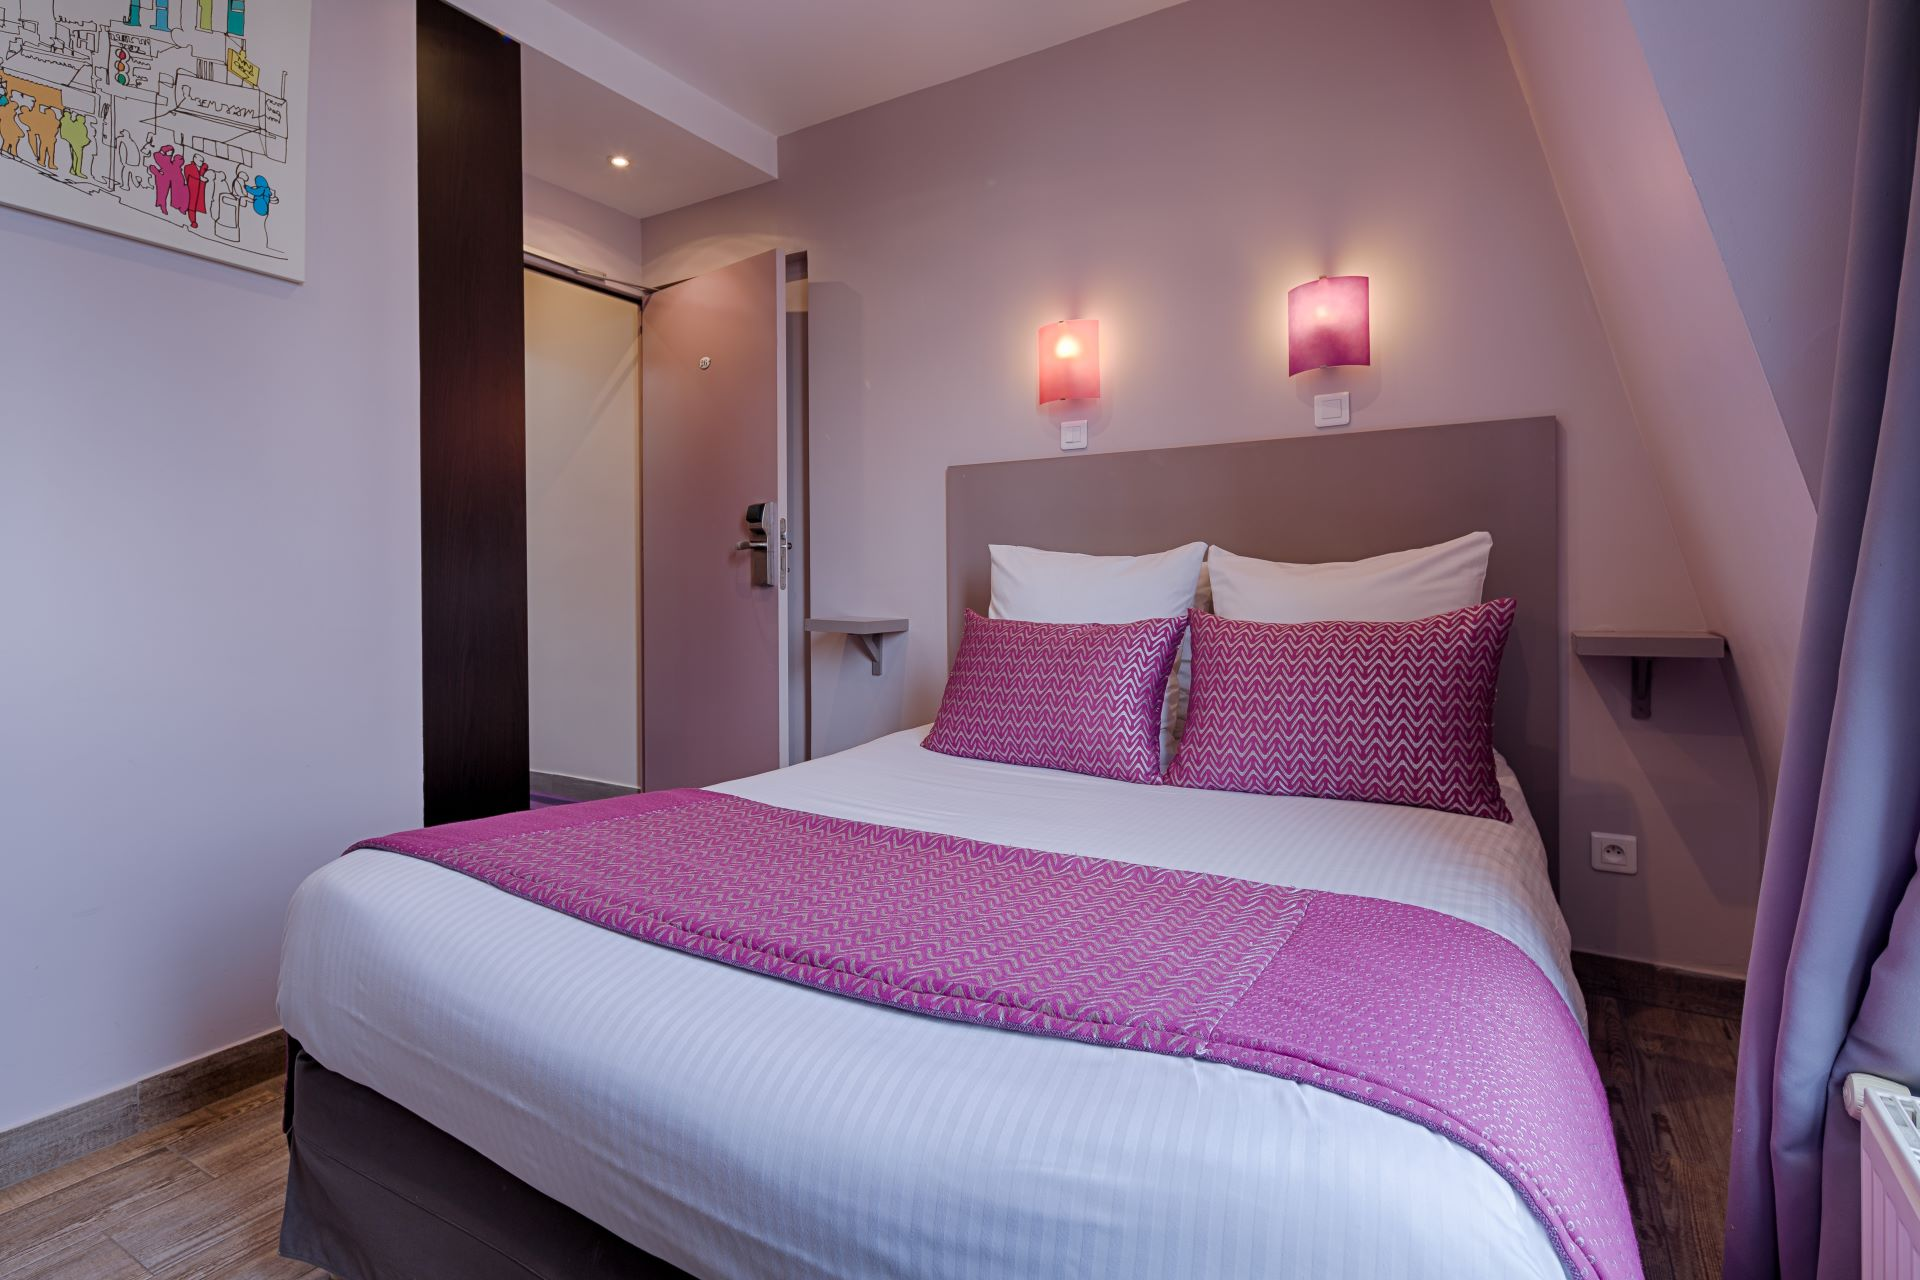 Chambre Paris Sweet Hotel In Paris Book A Hotel Located In The Heart Of The